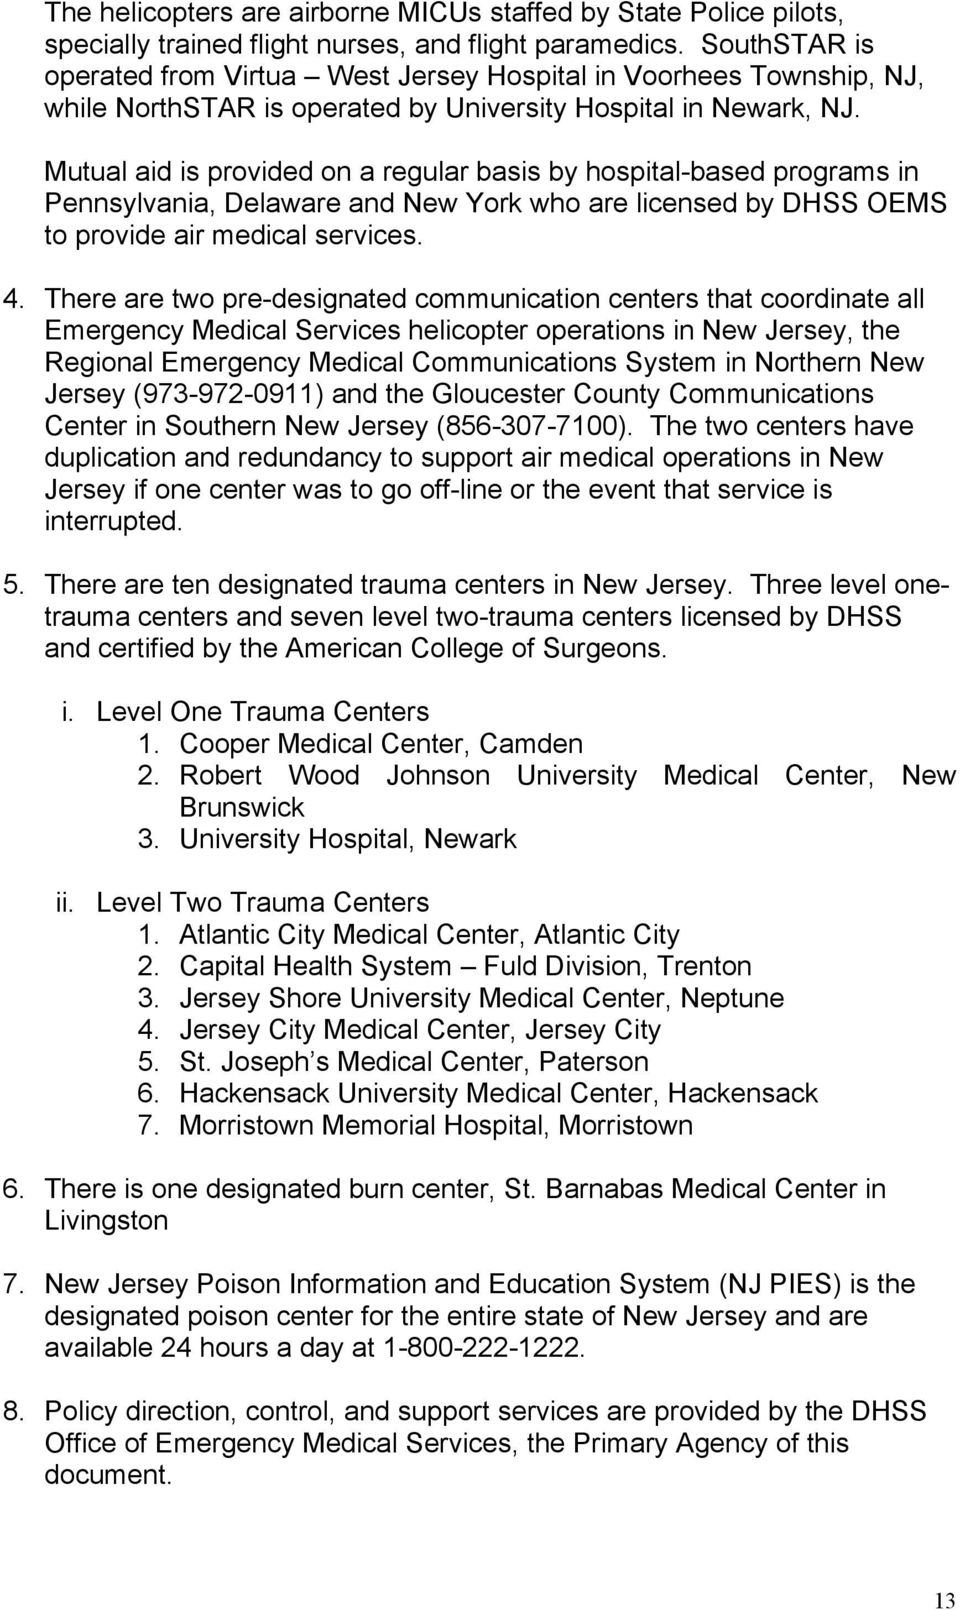 STATE OF NEW JERSEY EMERGENCY OPERATIONS and RESPONSE PLAN EMERGENCY